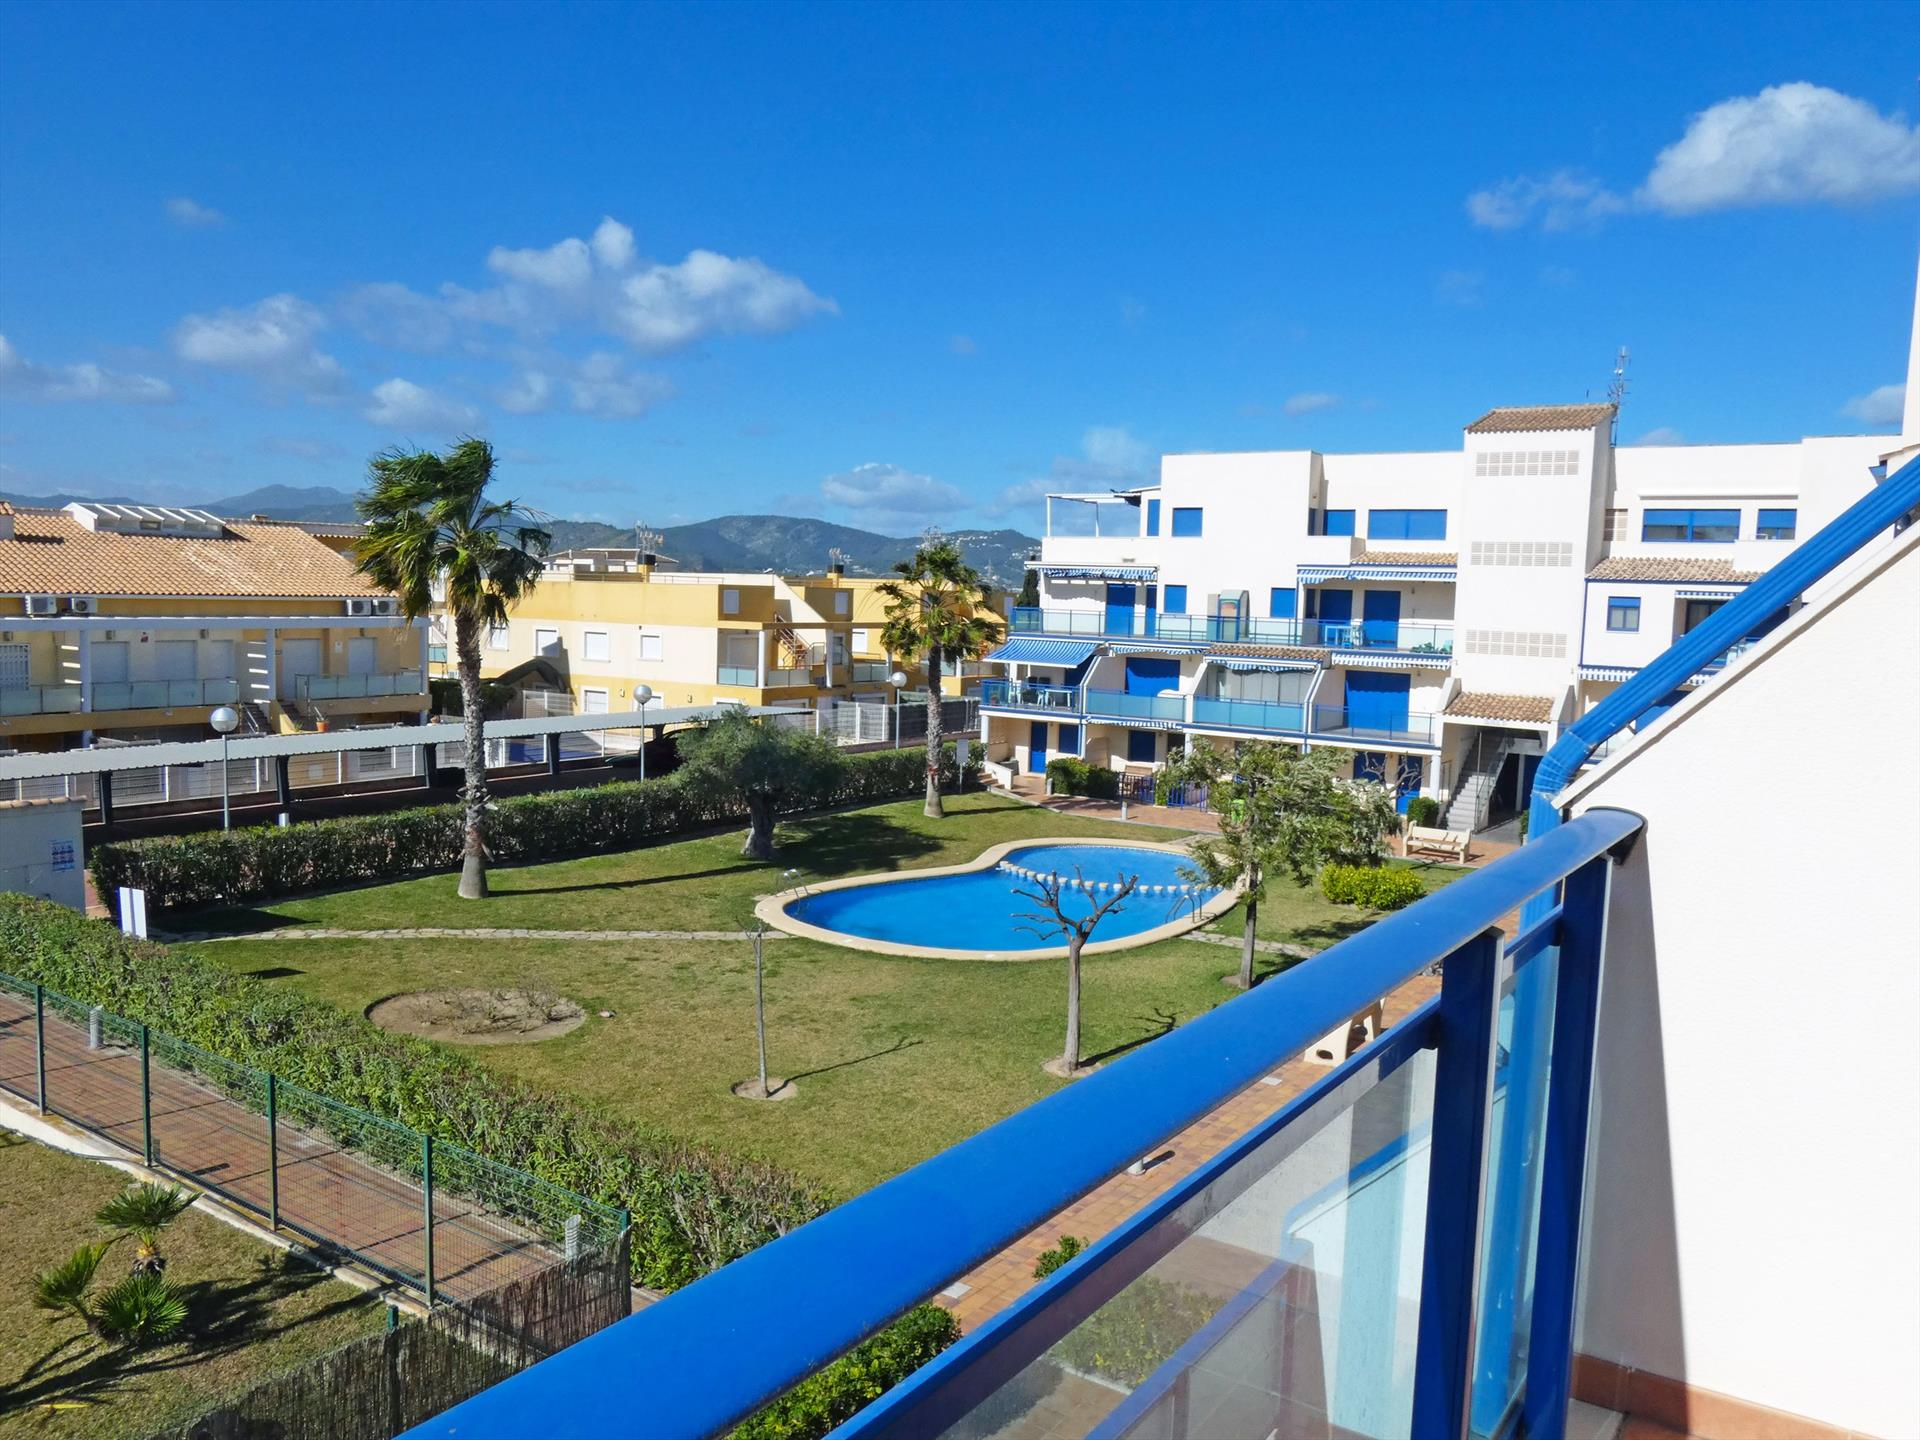 Benifla Playa Rabdells AP305, Classic and nice apartment in Oliva, on the Costa Blanca, Spain  with communal pool for 4 persons.....